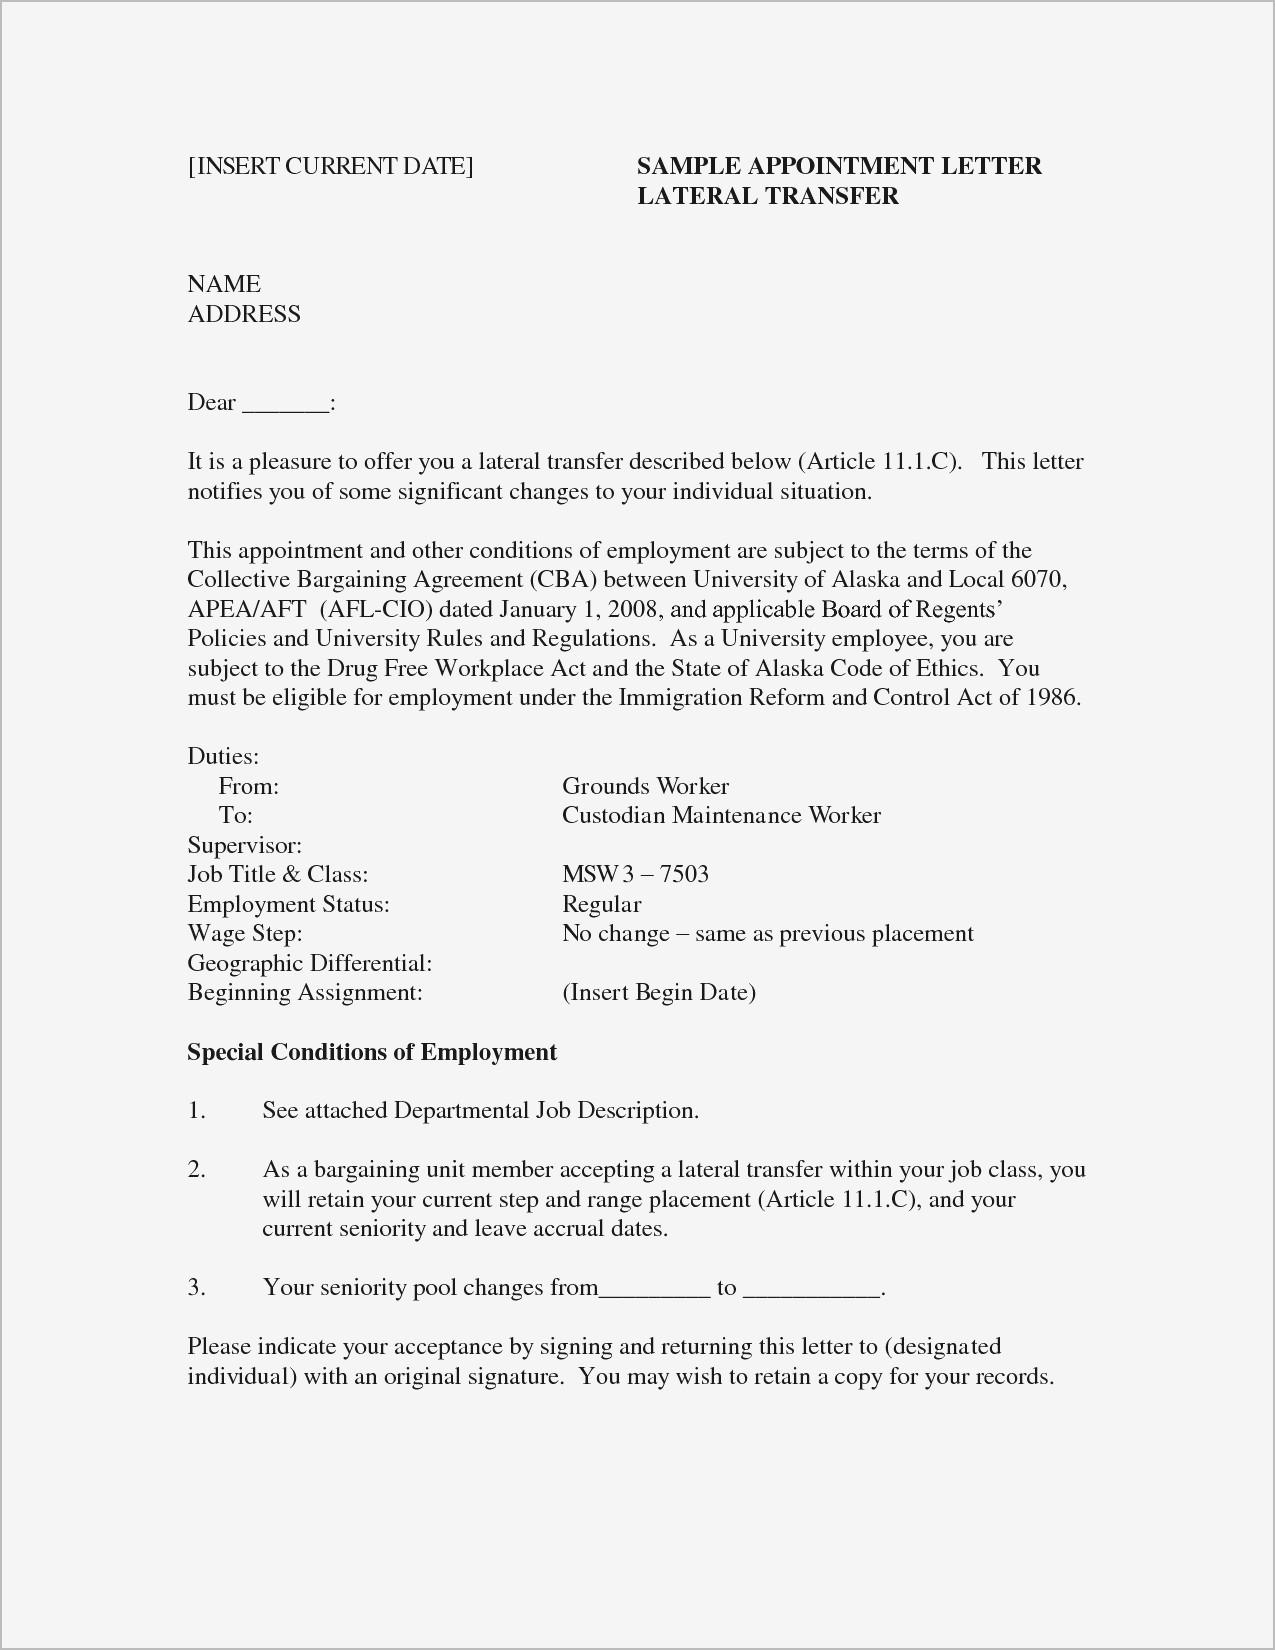 Employment Offer Letter Template - Job Fer Letters From Employer New Job Fer Letter Template Us Copy